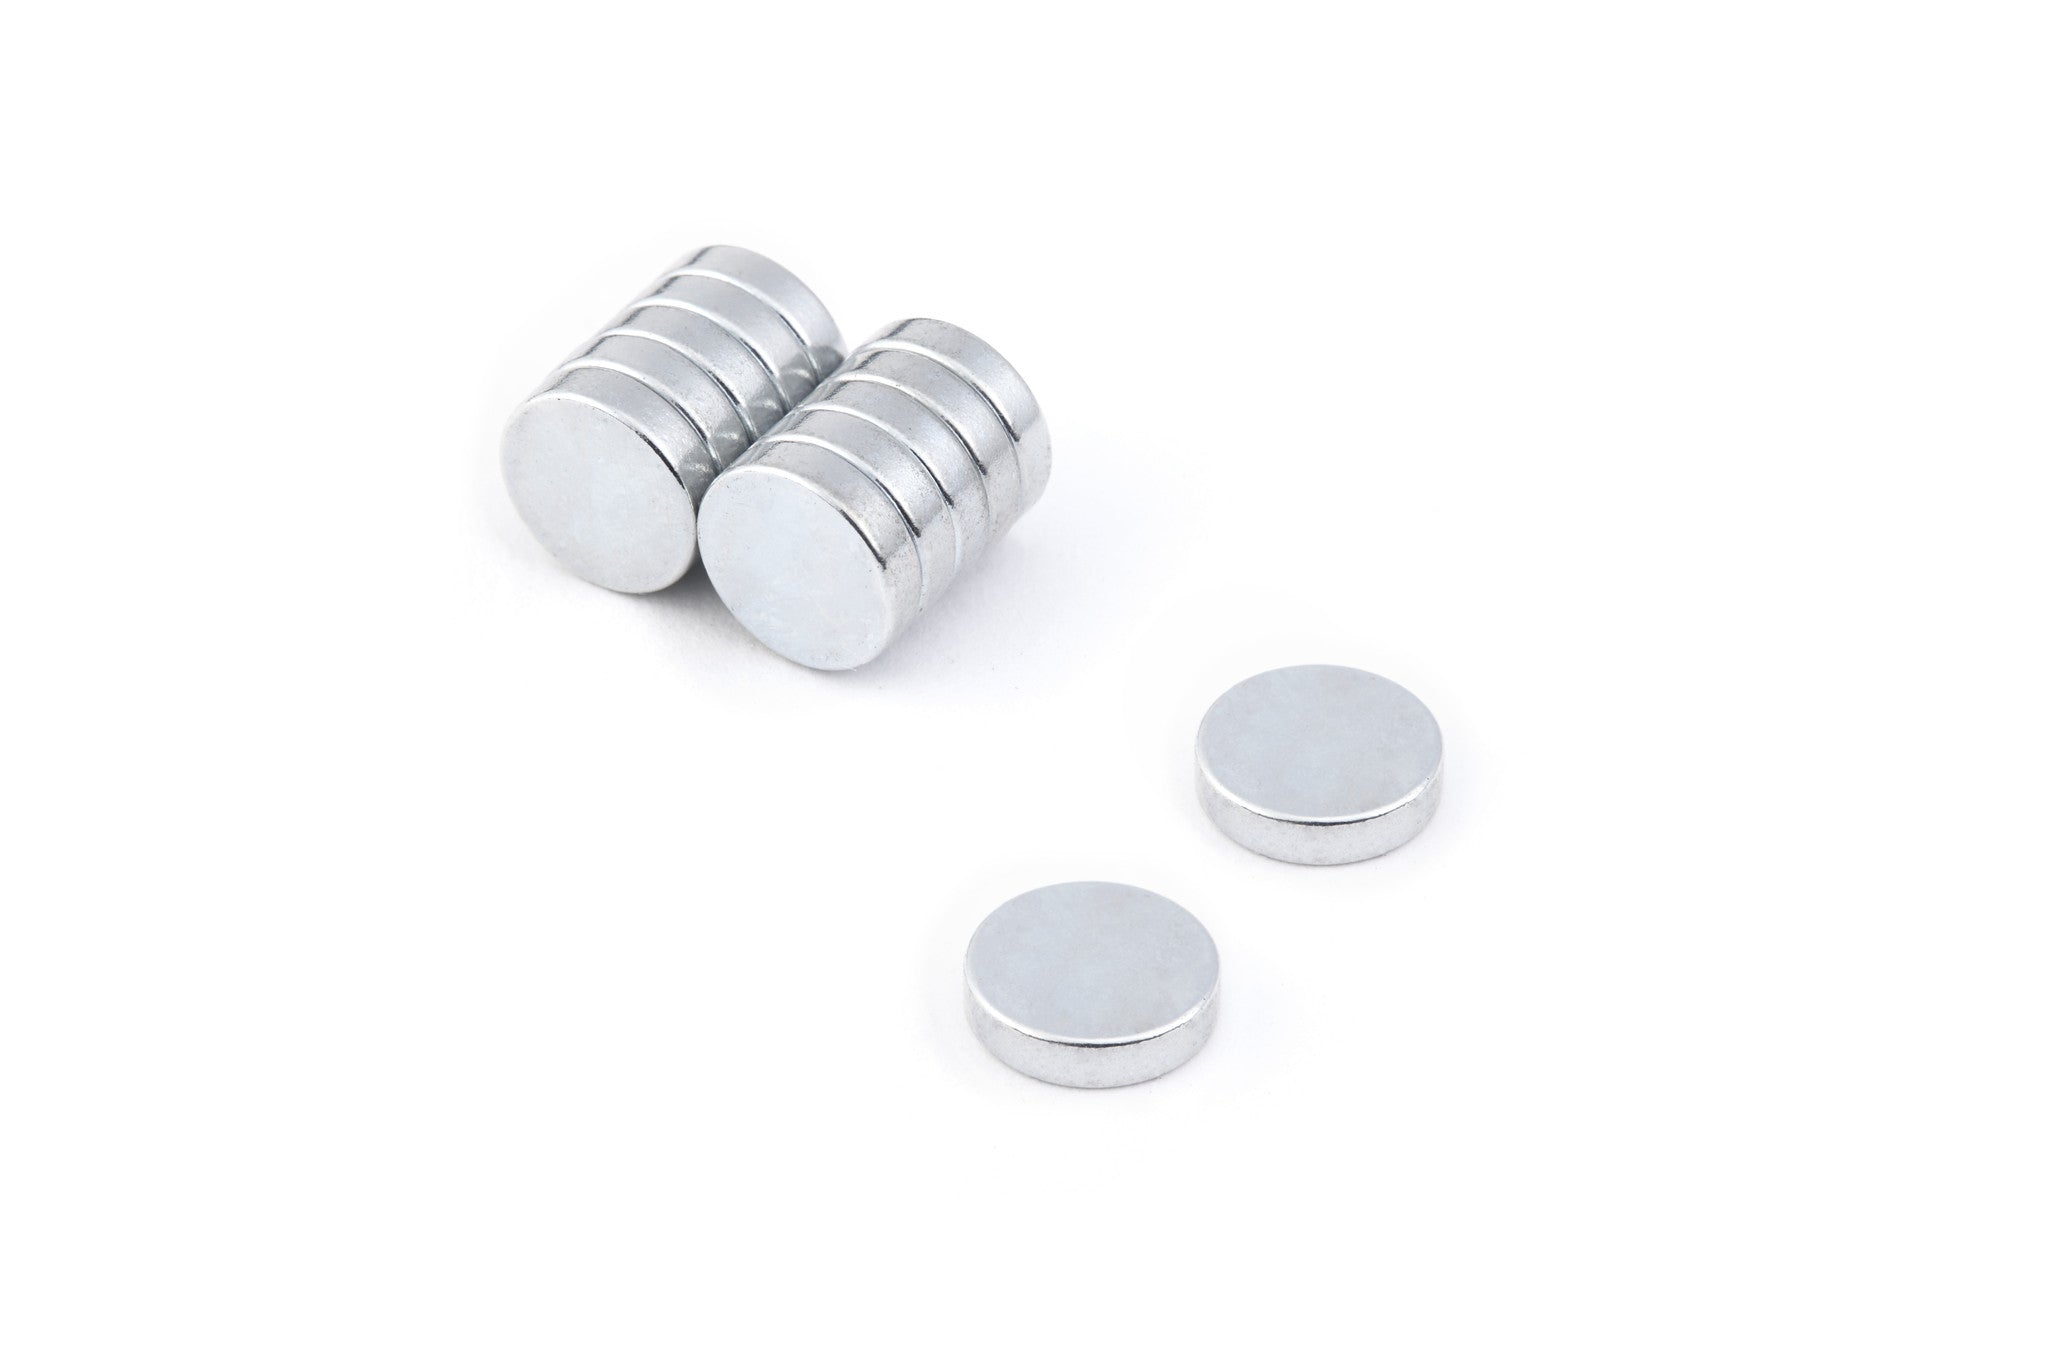 Additional Silver Magnets